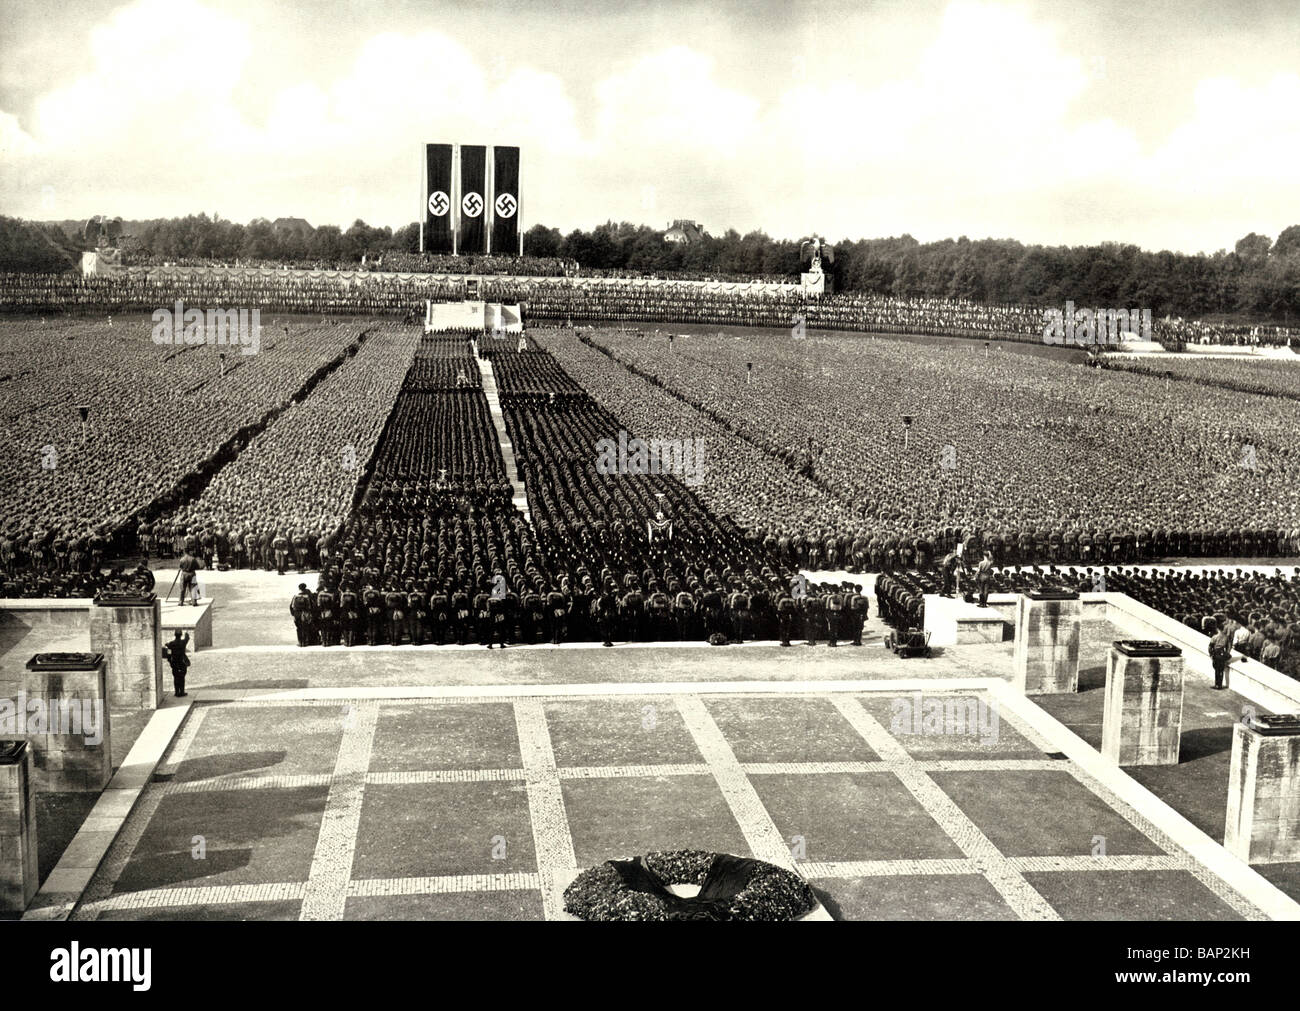 Nuremburg Rally 1936 photo of the annual gathering of the German Nazi Party for its homage to the Fuhrer - Stock Image